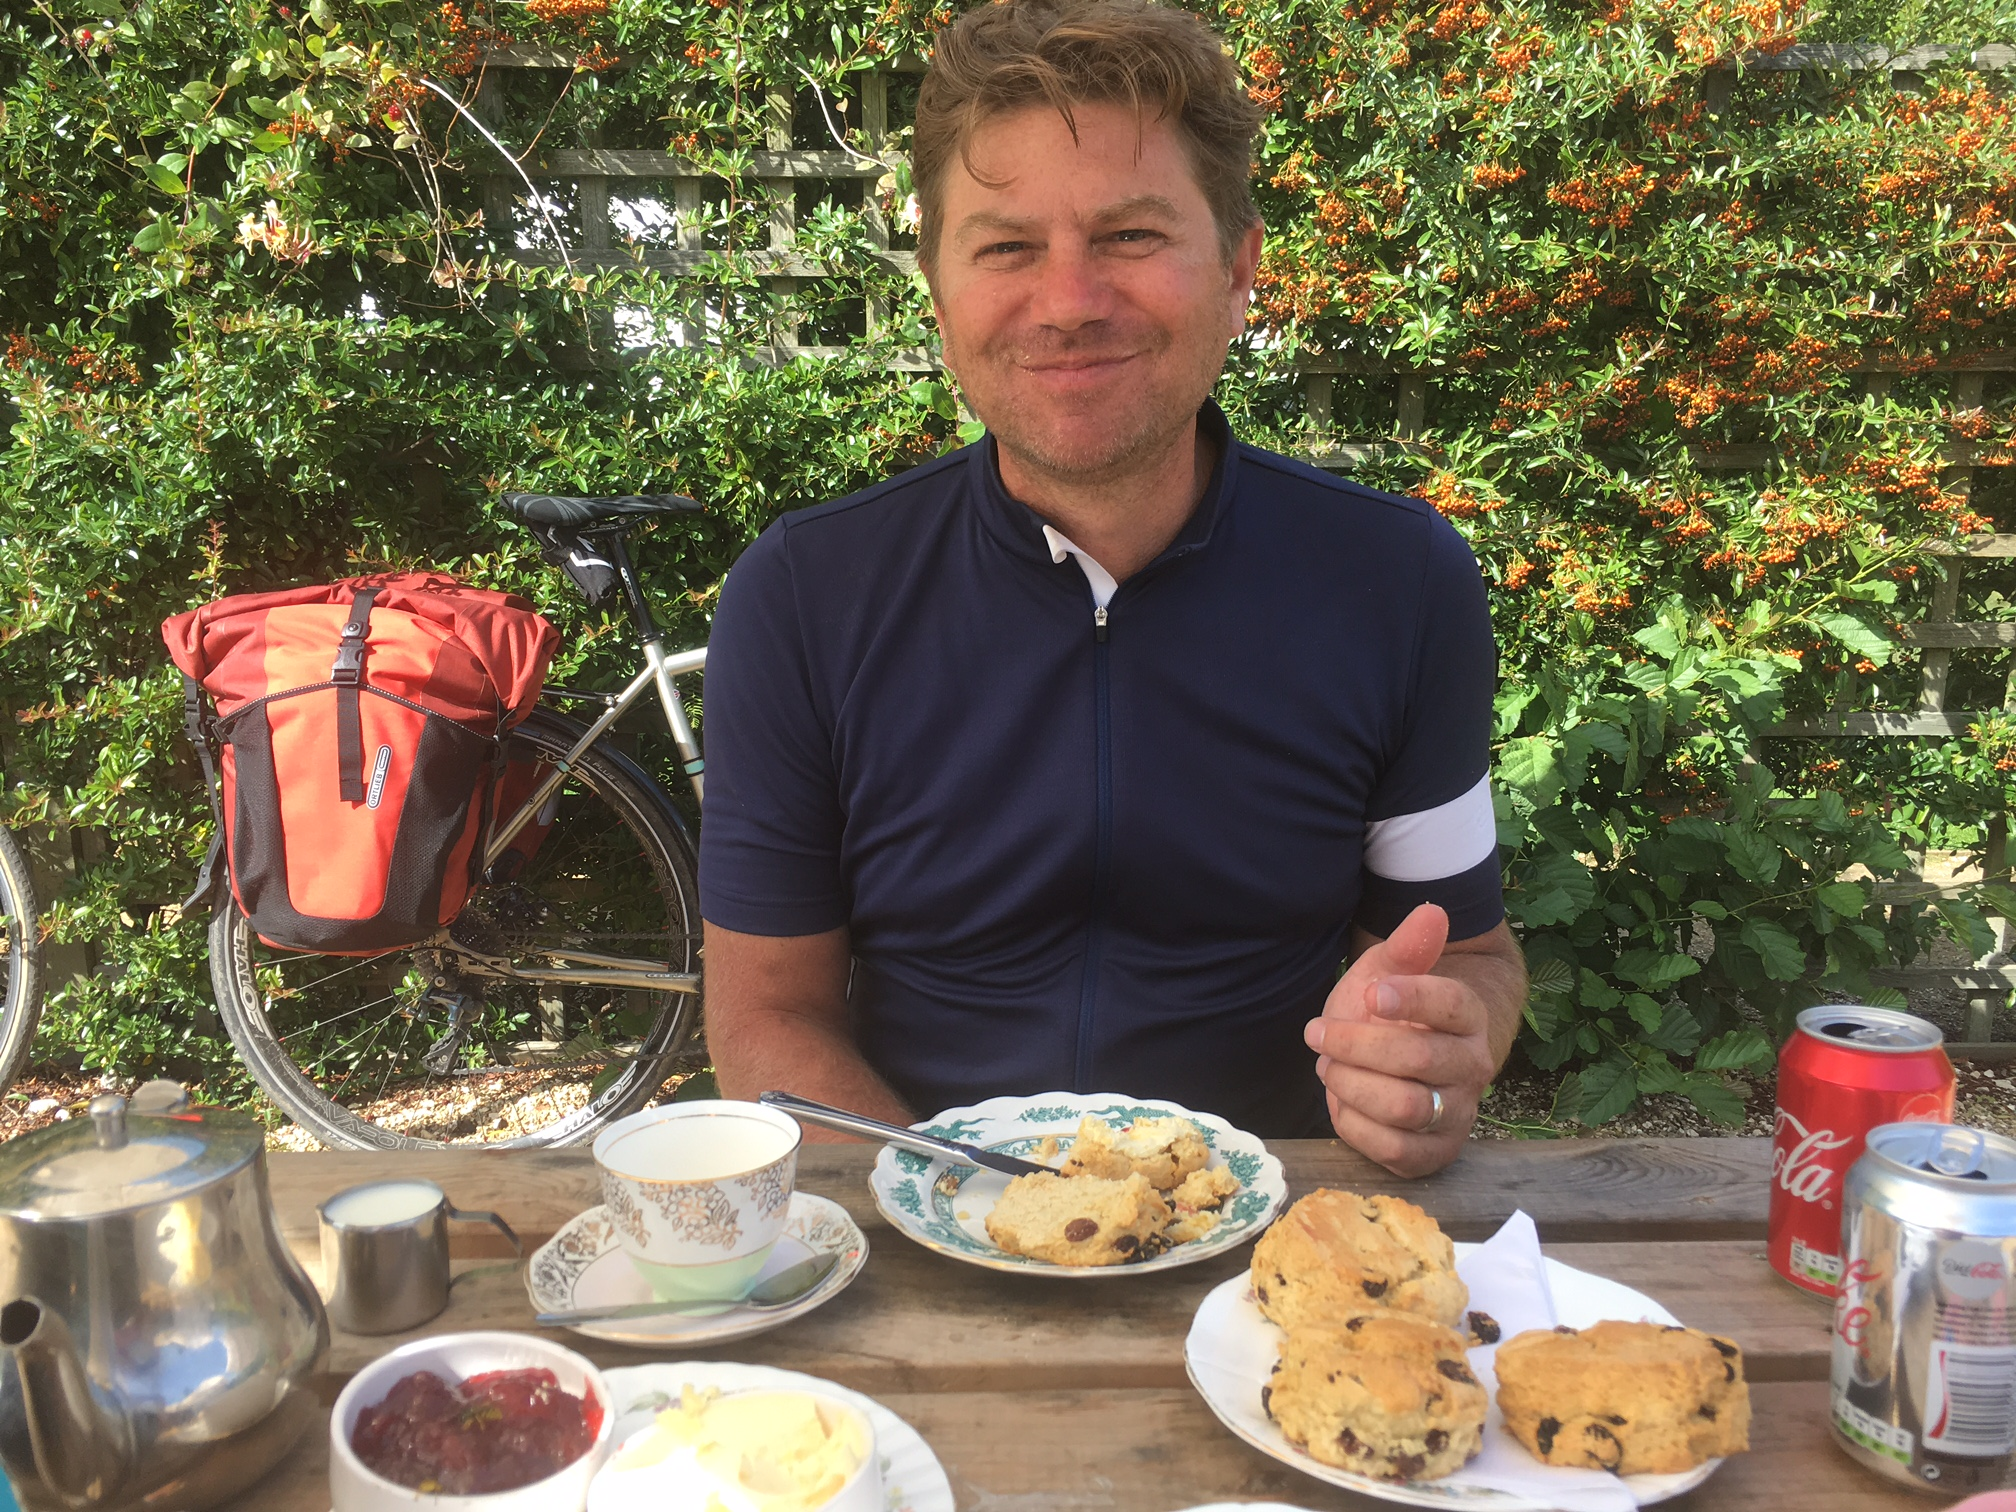 Dorset cream tea as recommended by the Dorchester Cycling Club